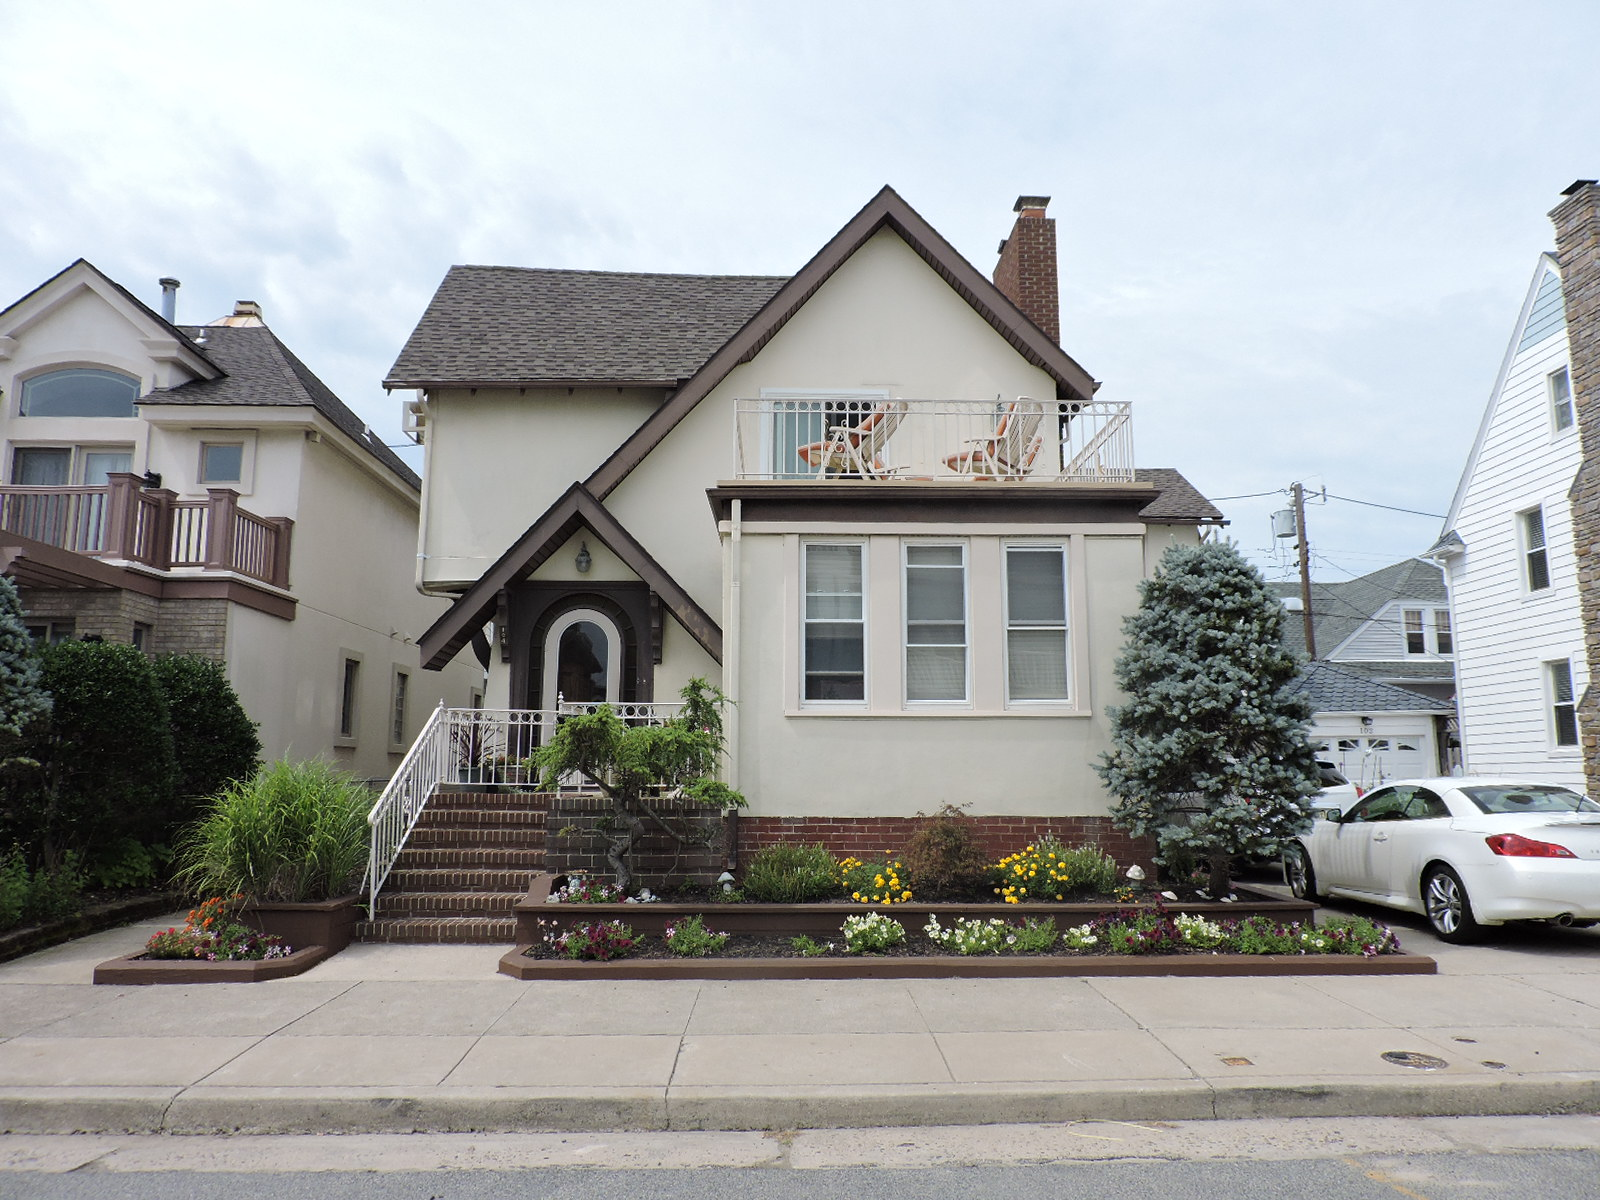 Single Family Home for Sale at 104 S Pittsburgh Avenue Ventnor, New Jersey 08406 United States